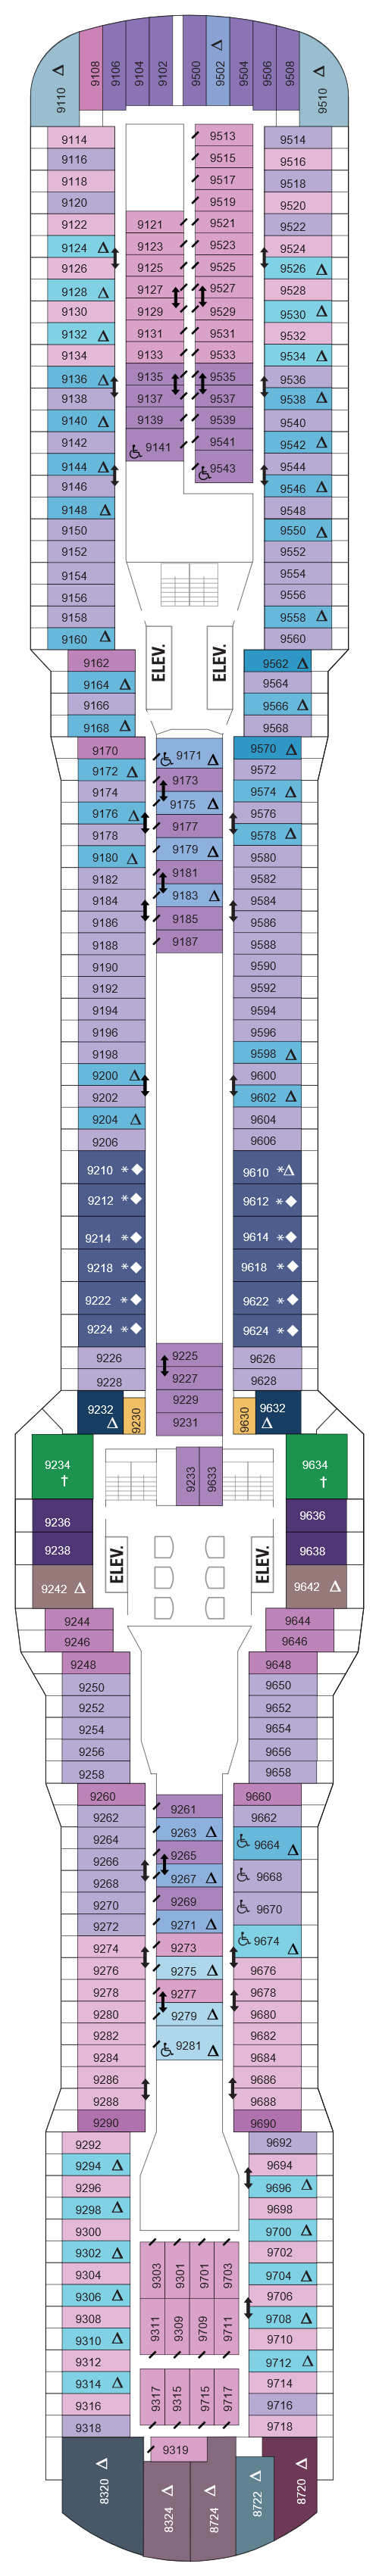 Quantum Of The Seas Deck 9 layout